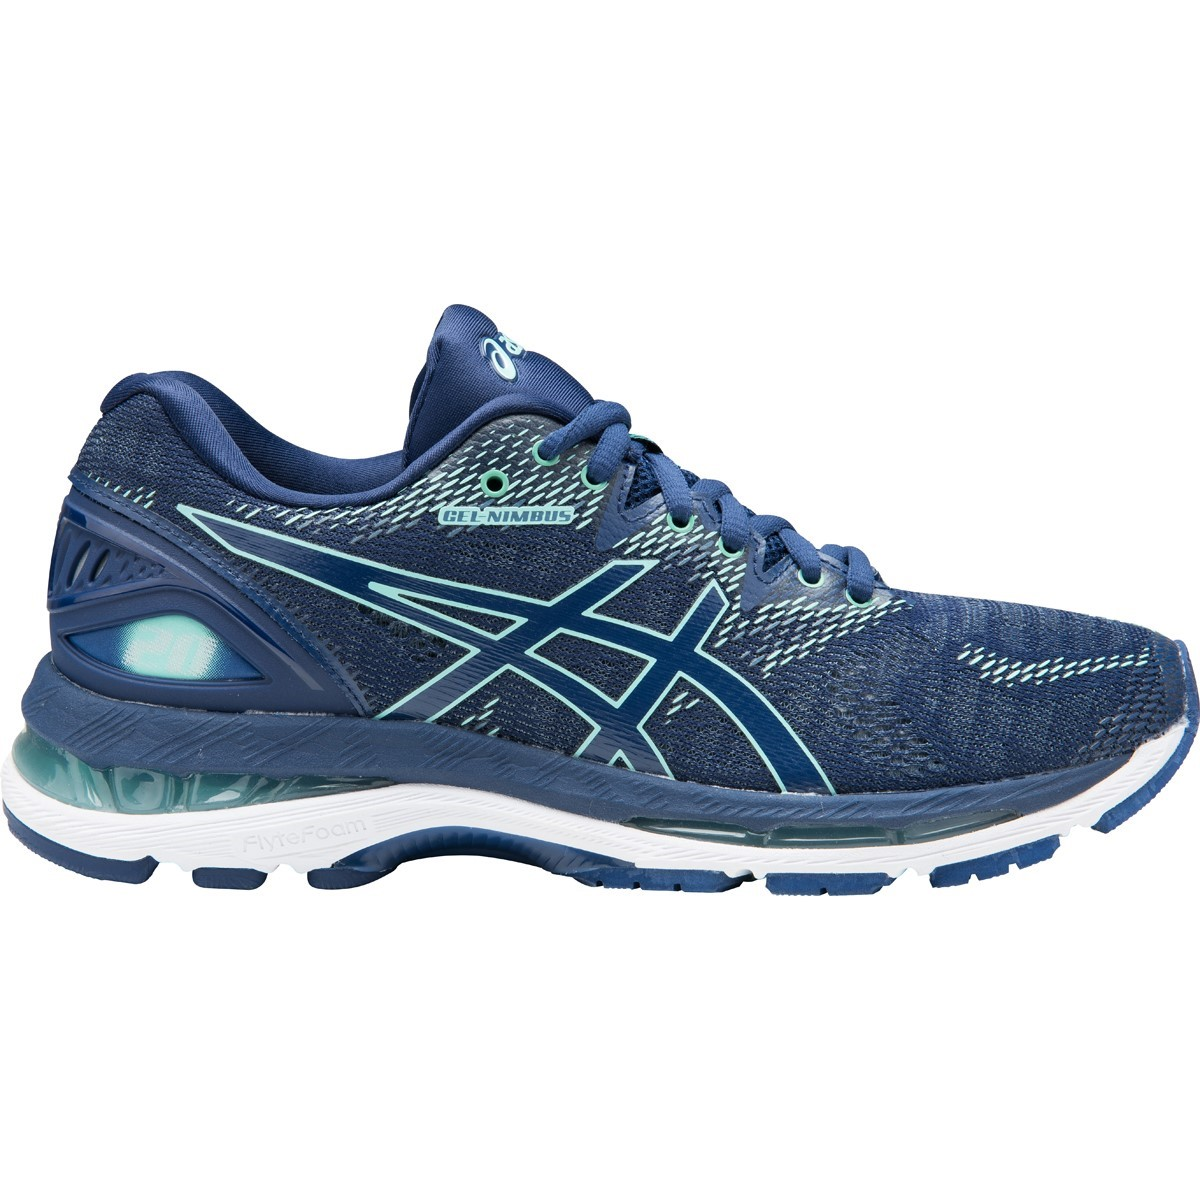 Asics Gel Nimbus 20 - Womens Running Shoes - Indigo Blue Opal Green ... ca968c57f2